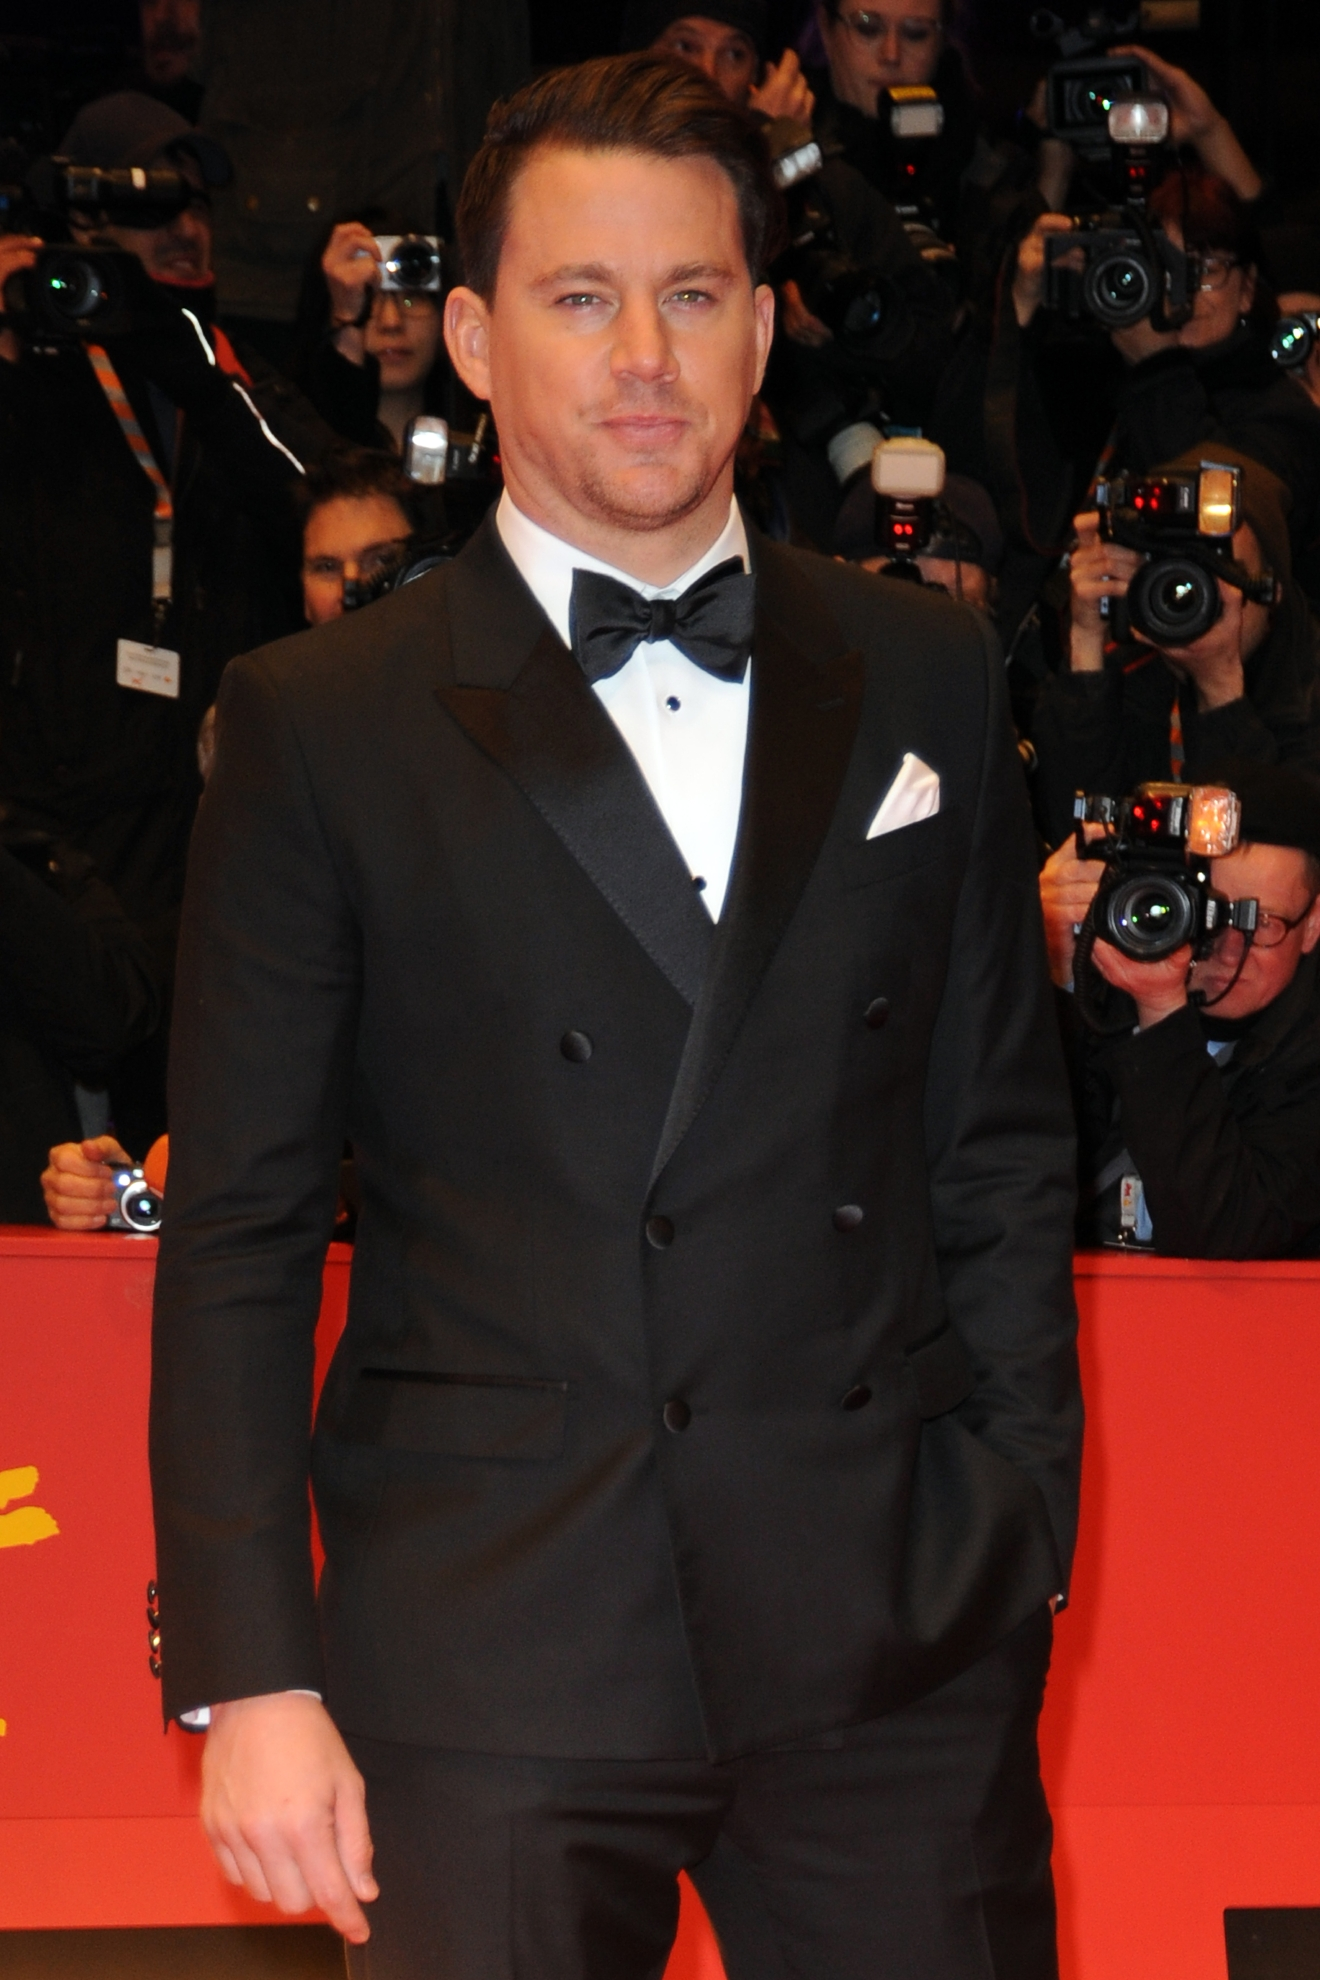 The 66th annual International Berlin Film Festival (Berlinale) - Opening Gala & Hail, Caesar! - Premiere at Berlinale Palace in Potsdamer Platz - Red Carpet Arrivals  Featuring: Channing Tatum Where: Berlin, Germany When: 11 Feb 2016 Credit: WENN.com  **Not available for publication in France**